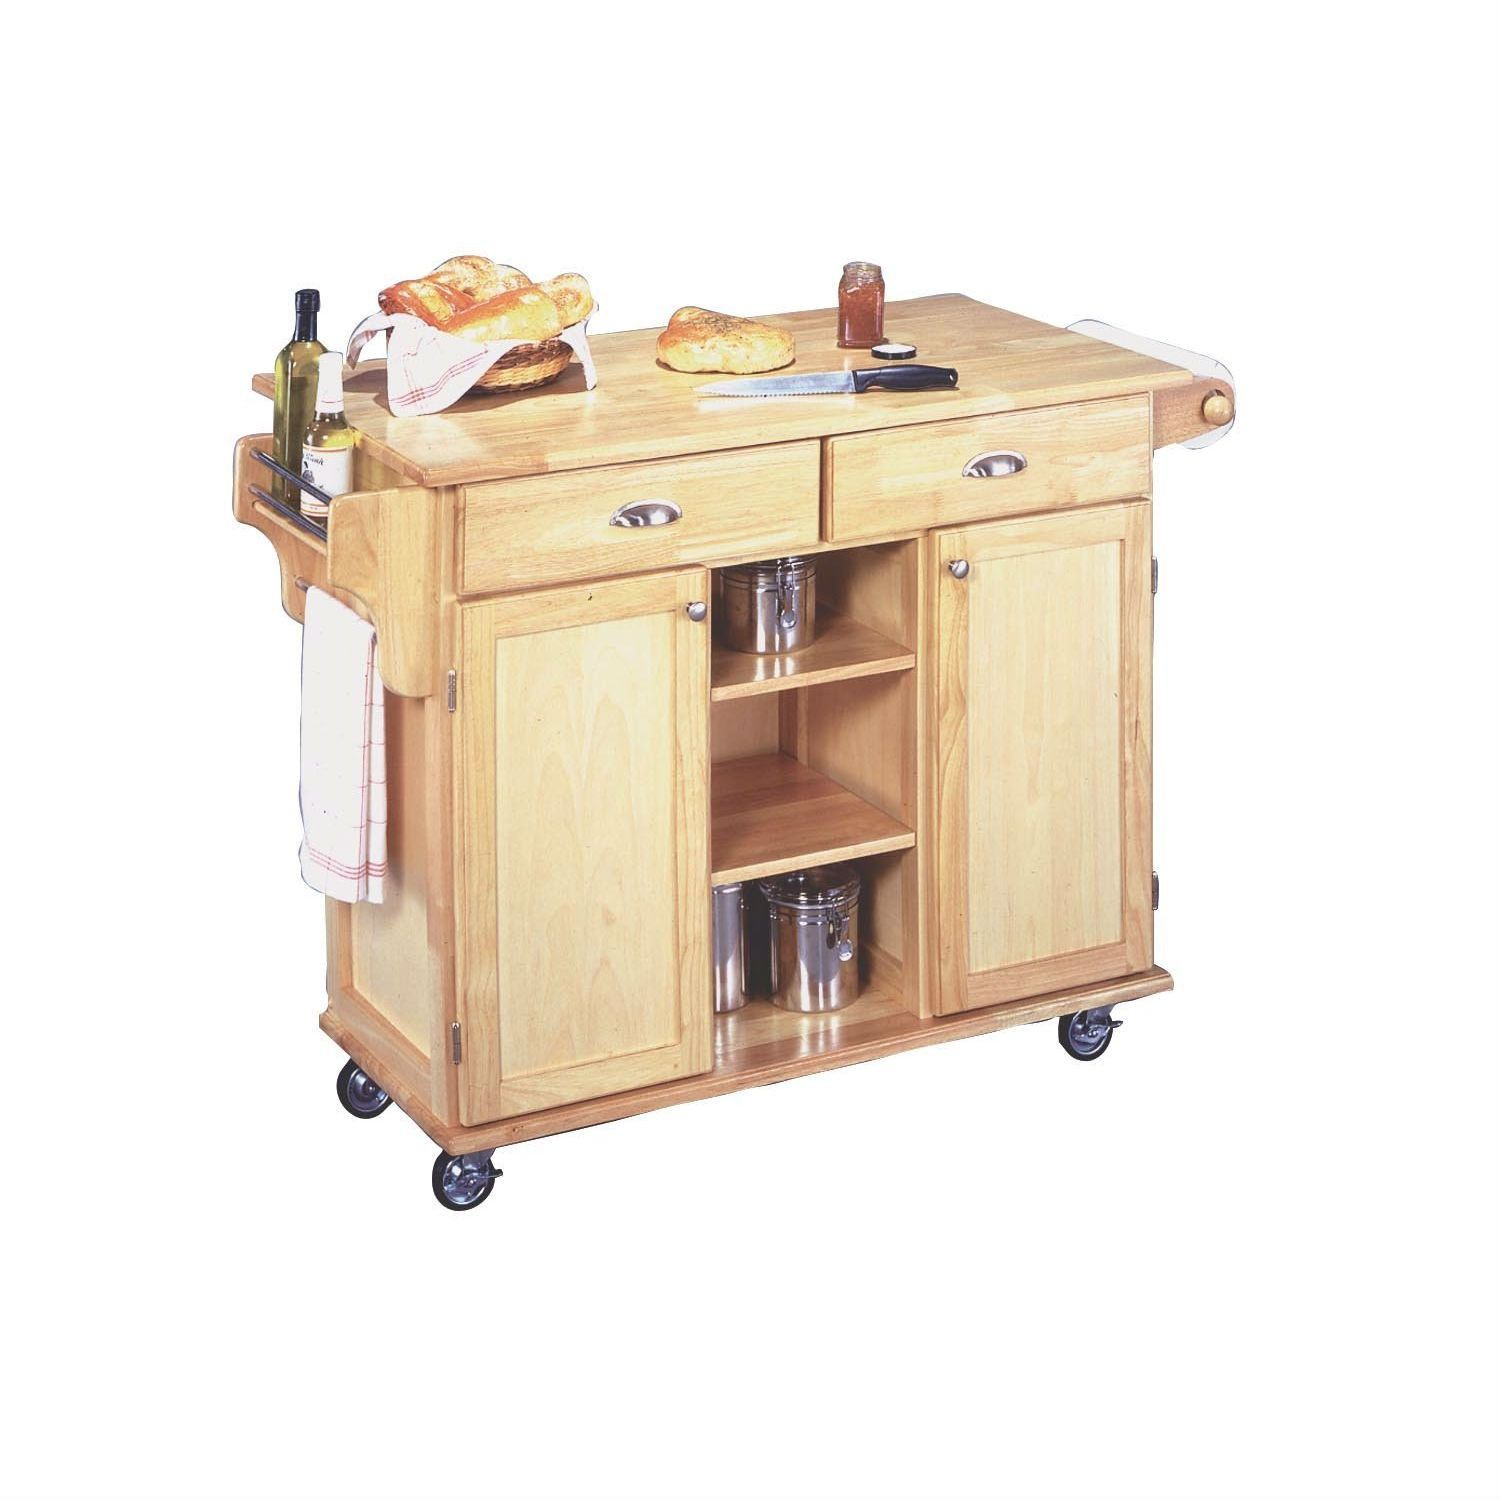 Kitchen island rolling  Natural Wood Finish Kitchen Island Cart with Locking Casters  want